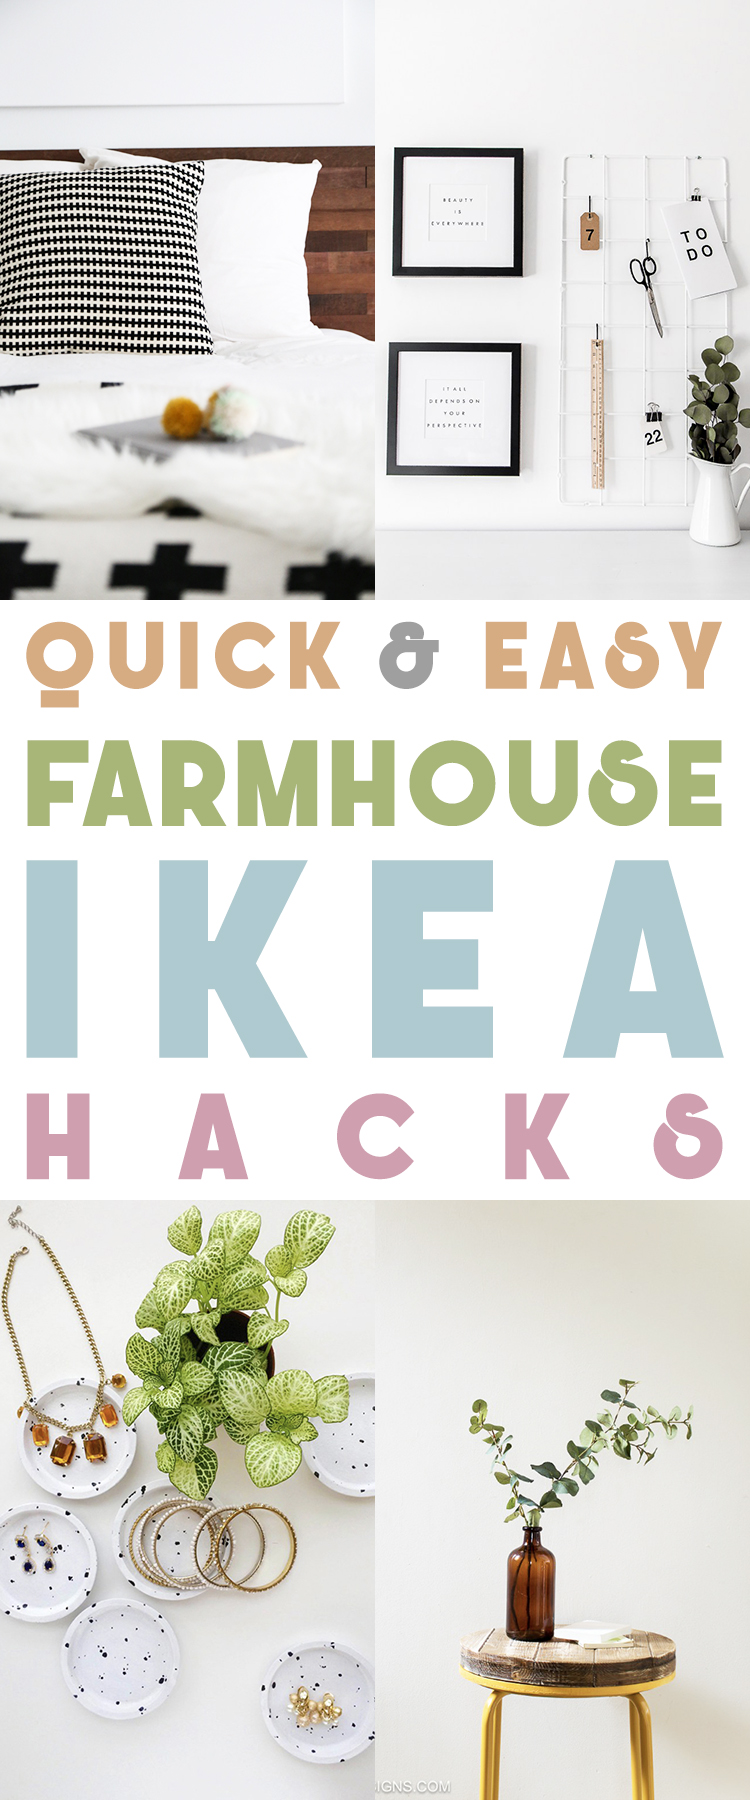 Quick and Easy Farmhouse Ikea Hacks